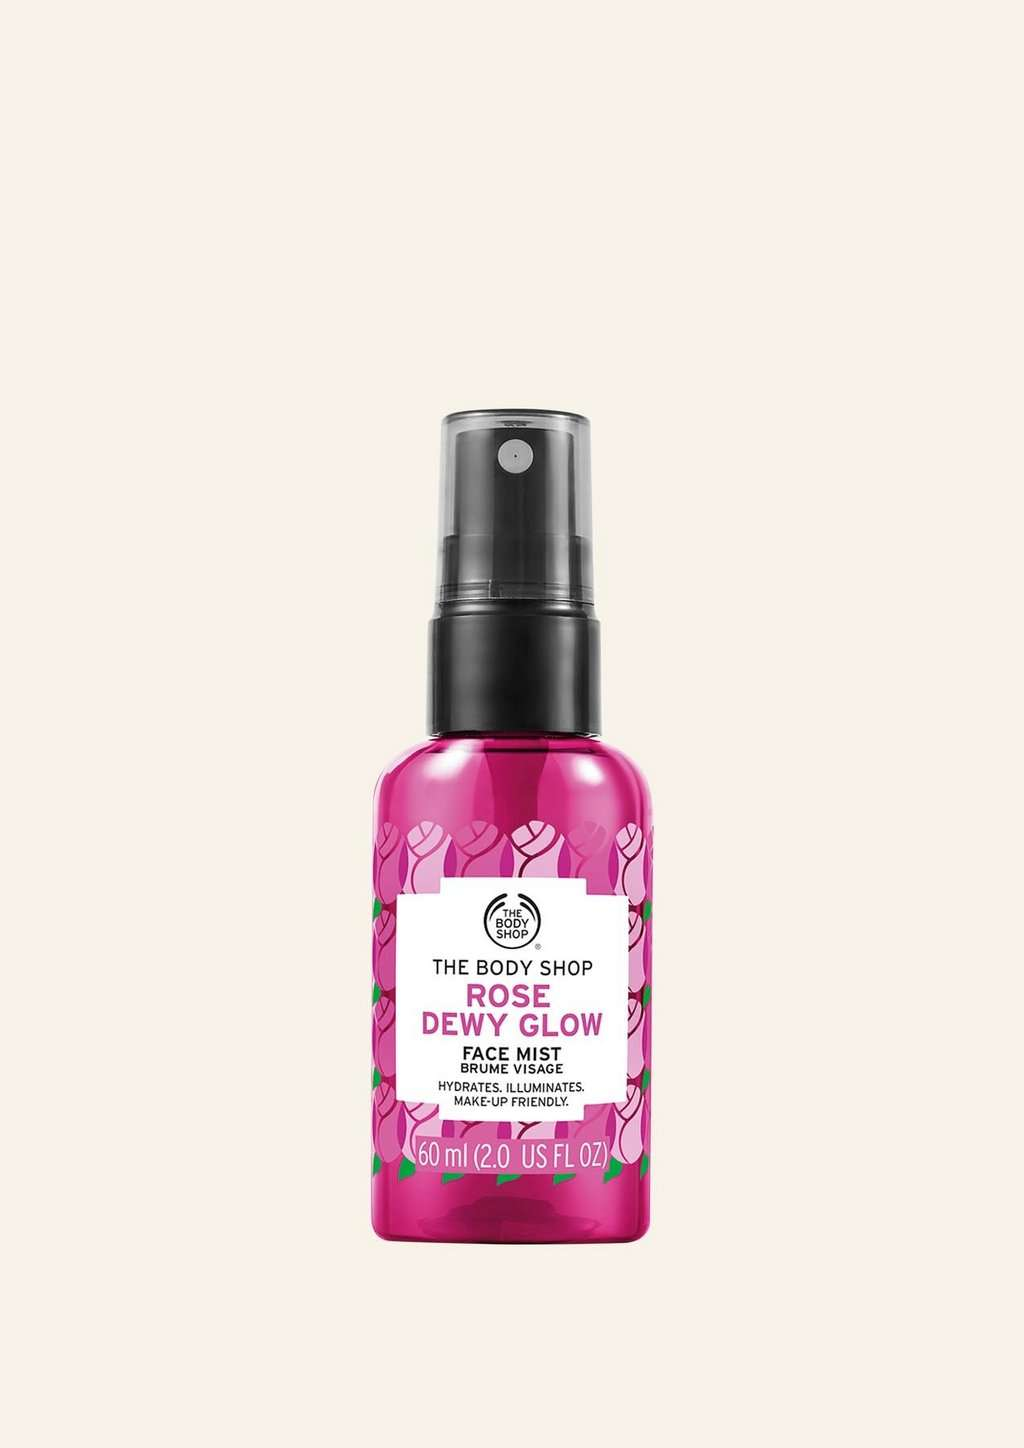 Rose face mist product